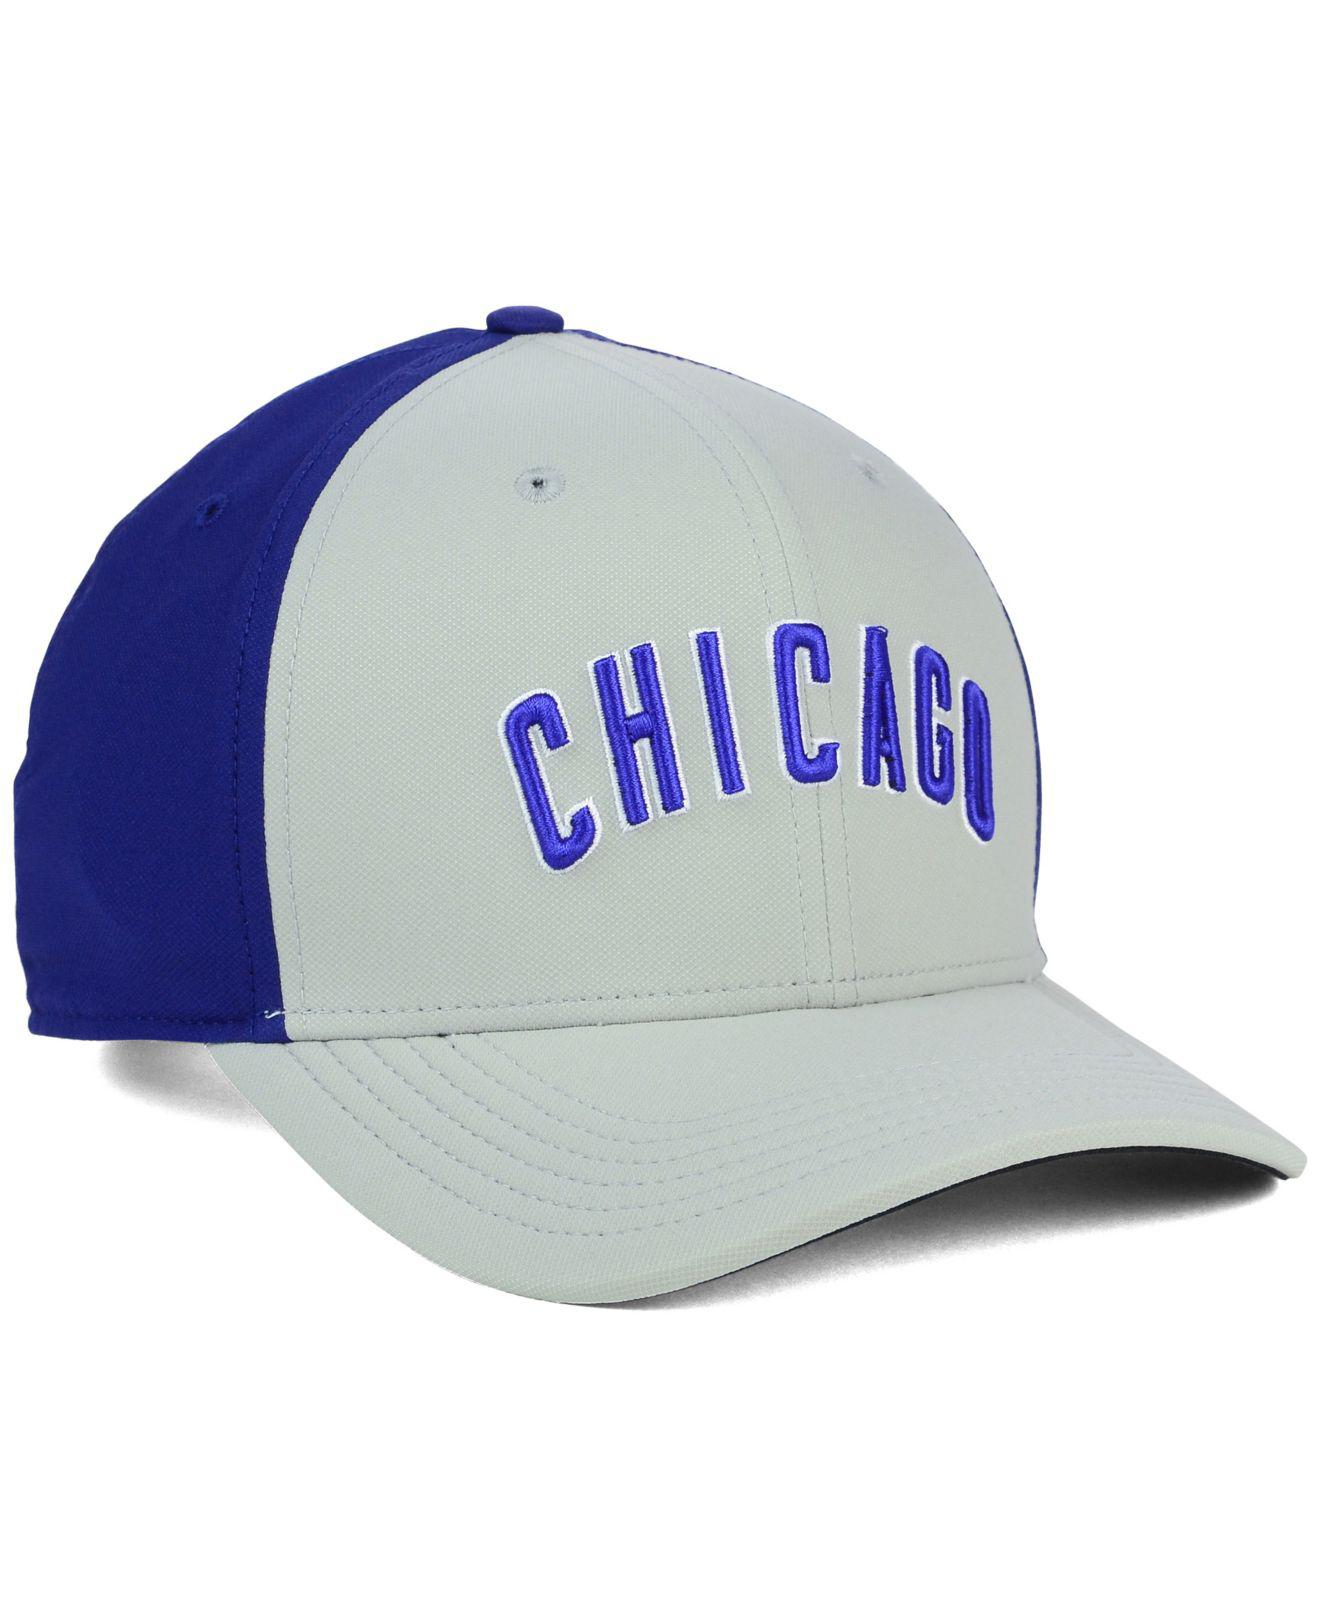 Lyst - Nike Chicago Cubs Vapor Classic Adjustable Cap in Gray for Men 925a71cfc47